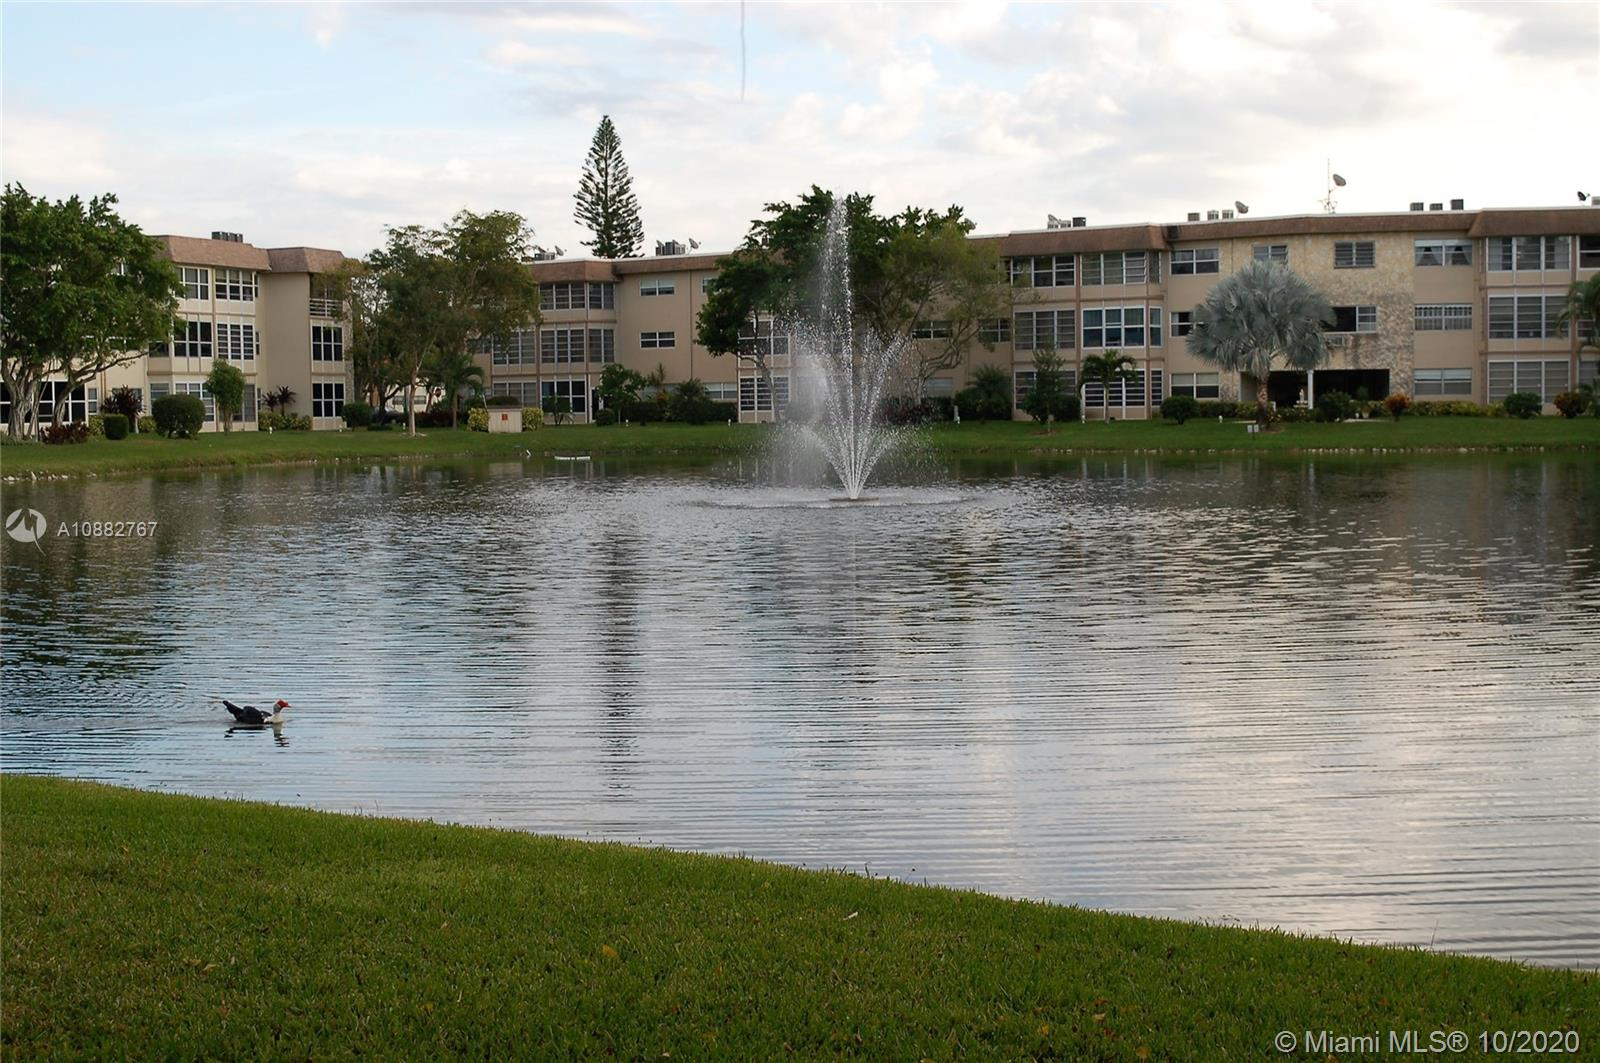 BEAUTIFULL 2 BEDROOMS WITH LAKE VIEW,THIRD FLOOR ,FULLY FURNISHED.CERAMIC FLOOR THROUGHOUT THE UNIT.BATHROOMS COMPLETELY REDONE.INTERNET AND CABLE IS INCLUDE IN THE HOA FEE. THIS HOPA COMMUNITY OFFERS POOL,GYM,LIBRARY, SHUFFLEBOARD ,BACCI BALL,BILLARD TABLE,COMMUNITY ROOM.A MUST SEE !